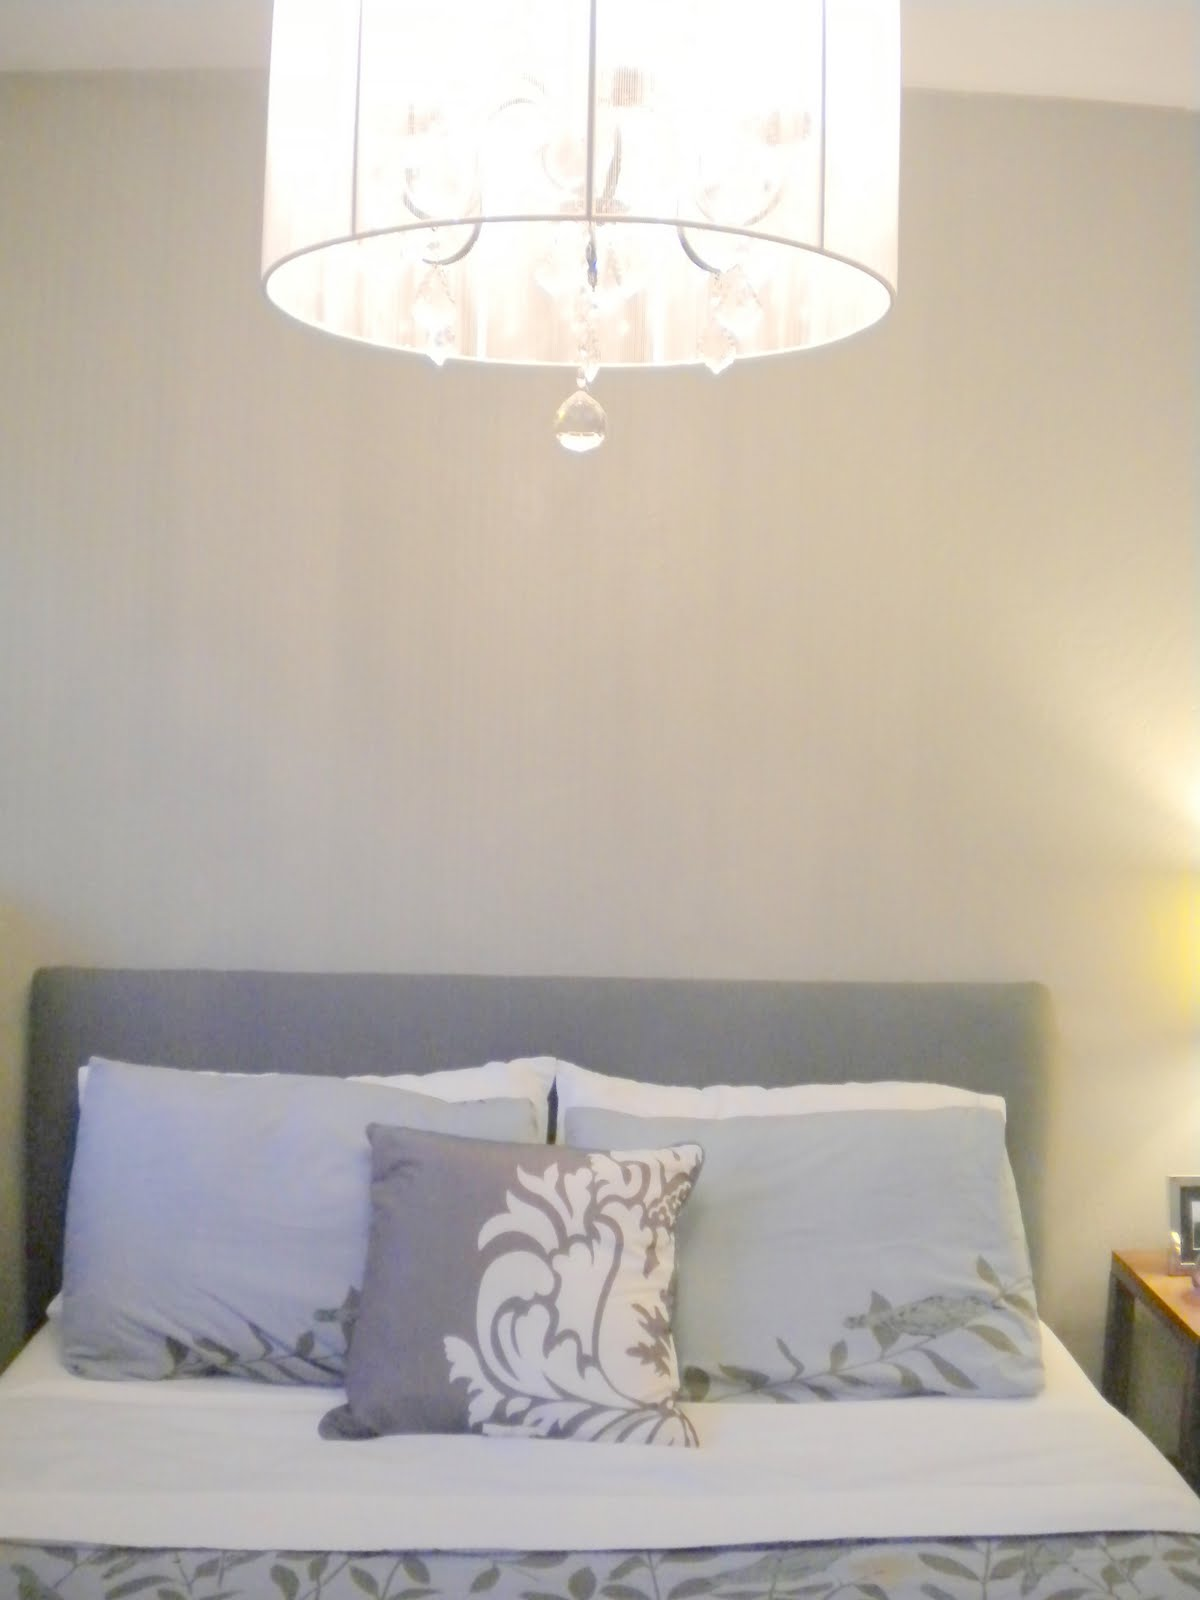 Our Diy Headboard Done Home Depot Center